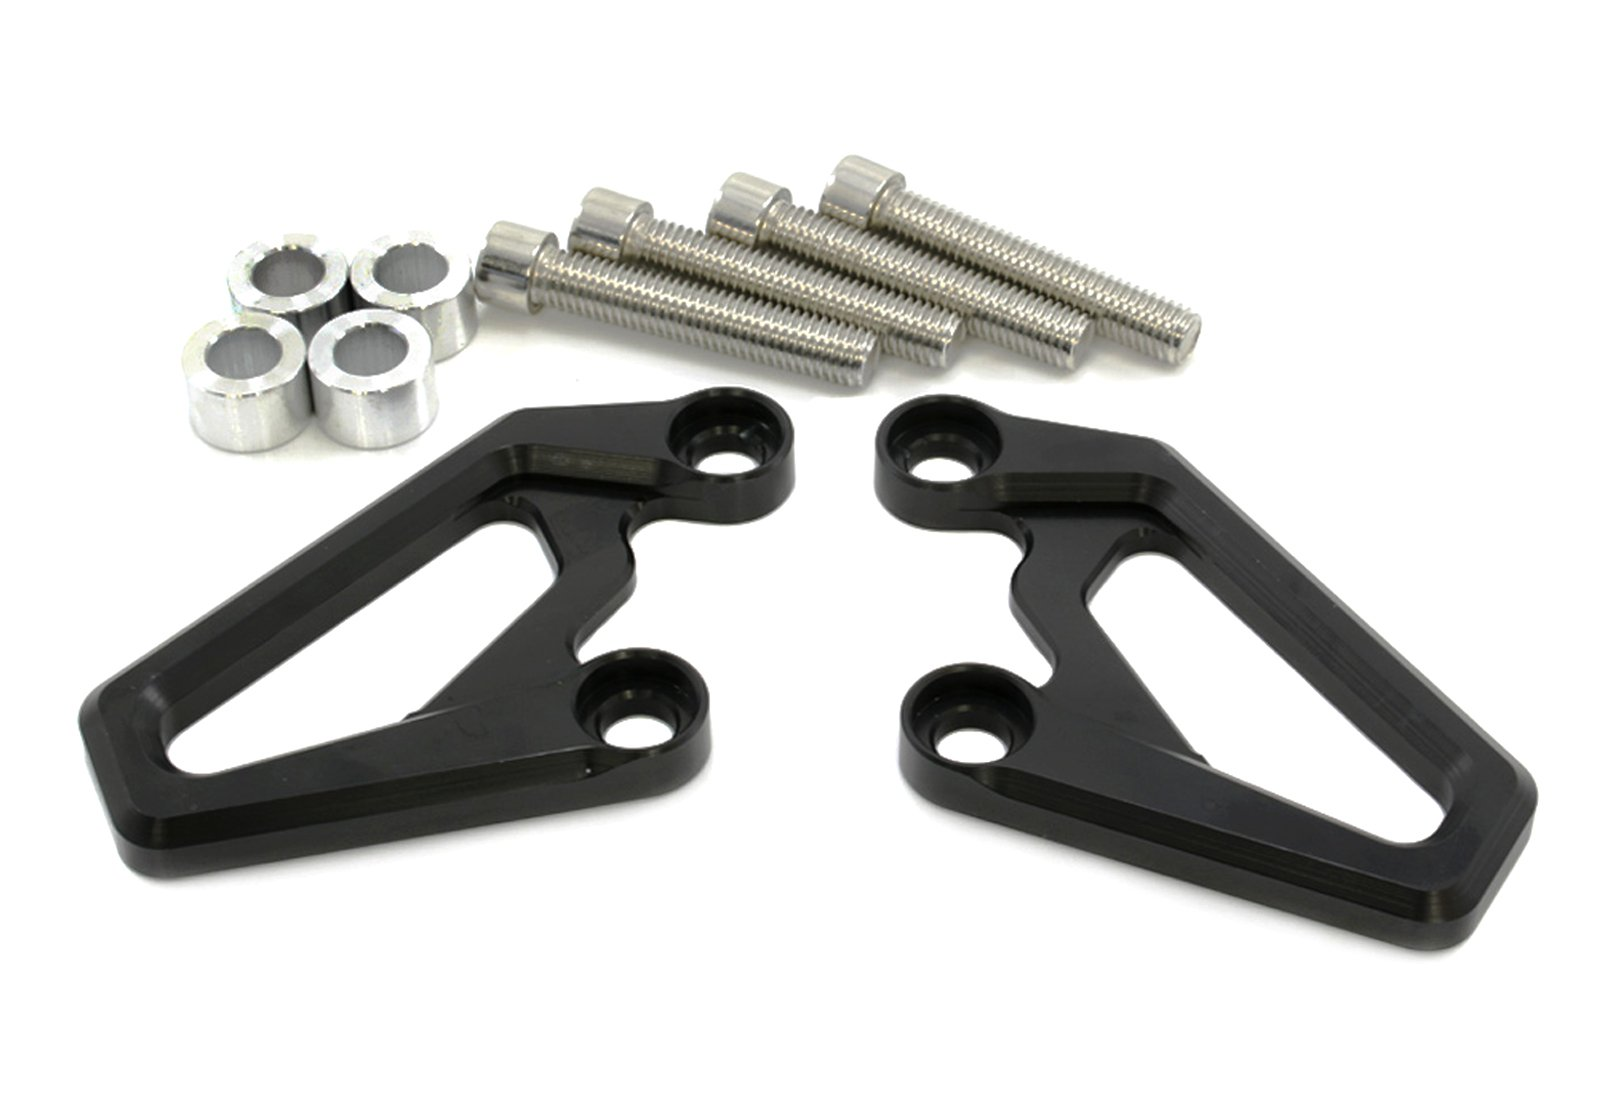 Motorcycle Front Left & Right Brake Caliper Guard For BMW R1200GS 08-12 R1200GS ADV 09-13